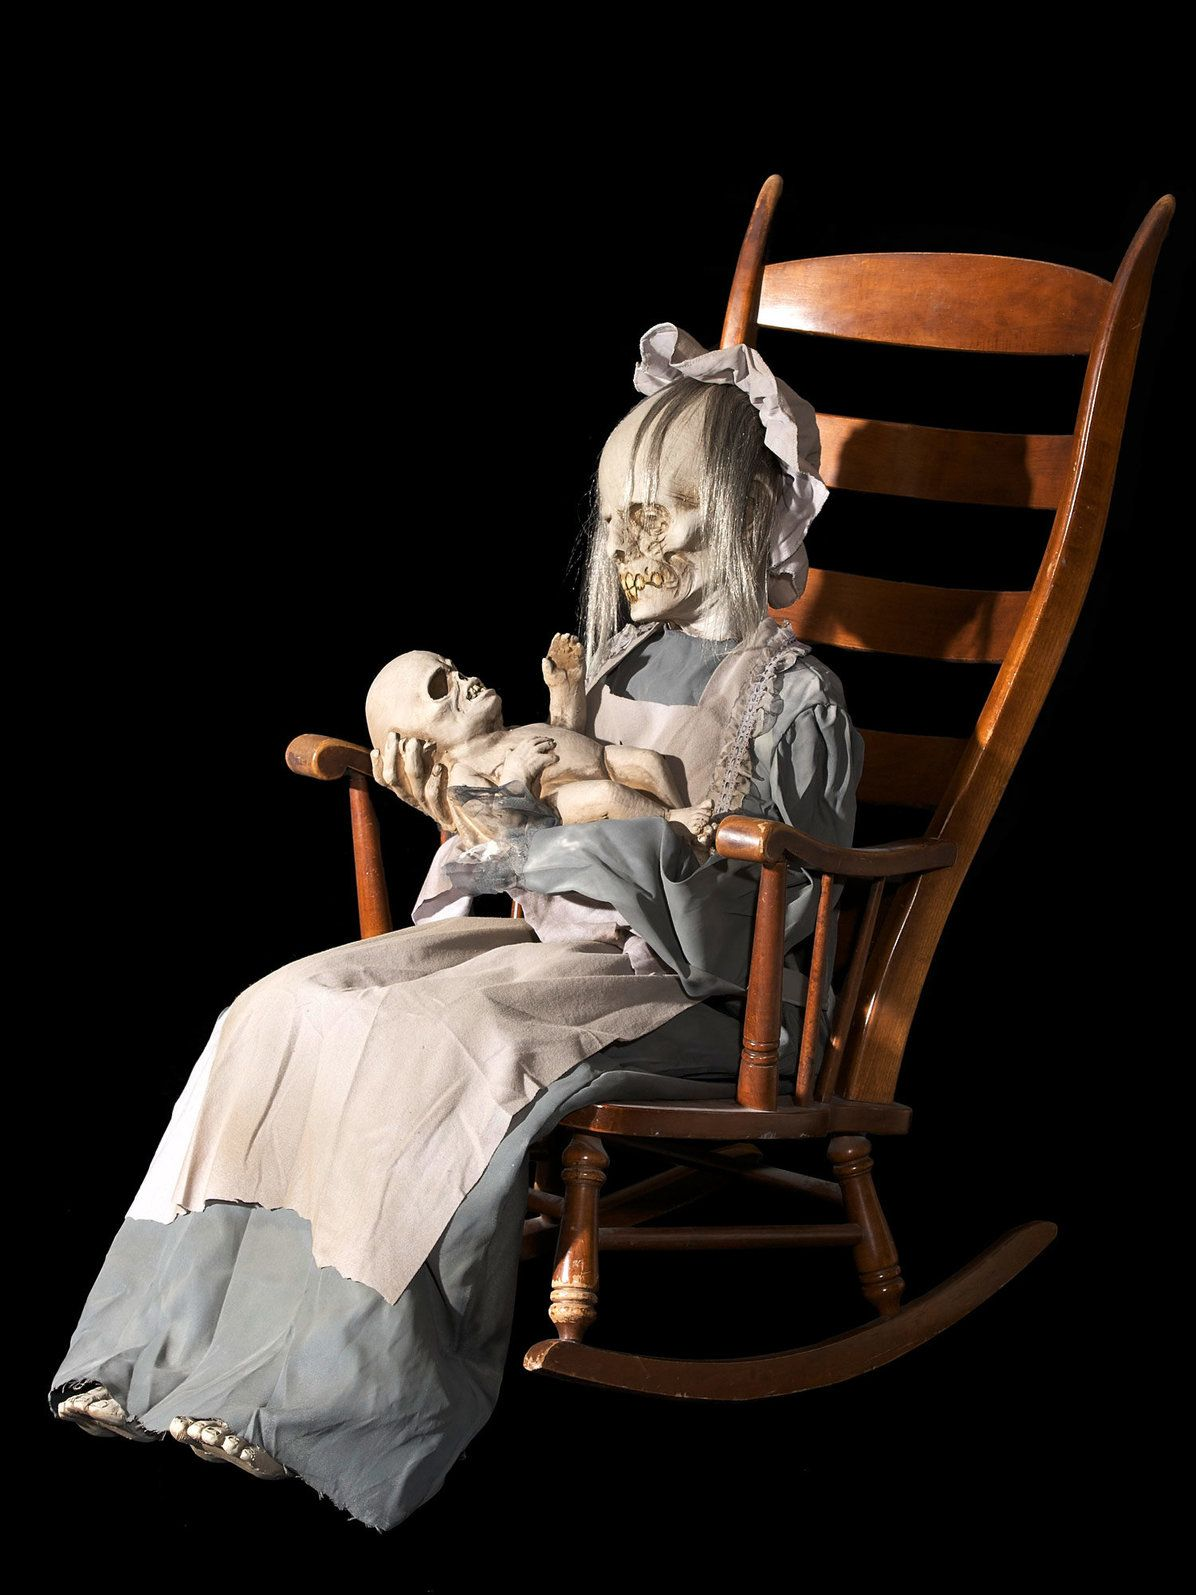 Lullaby Dead Woman and Baby Prop Baby props, Halloween